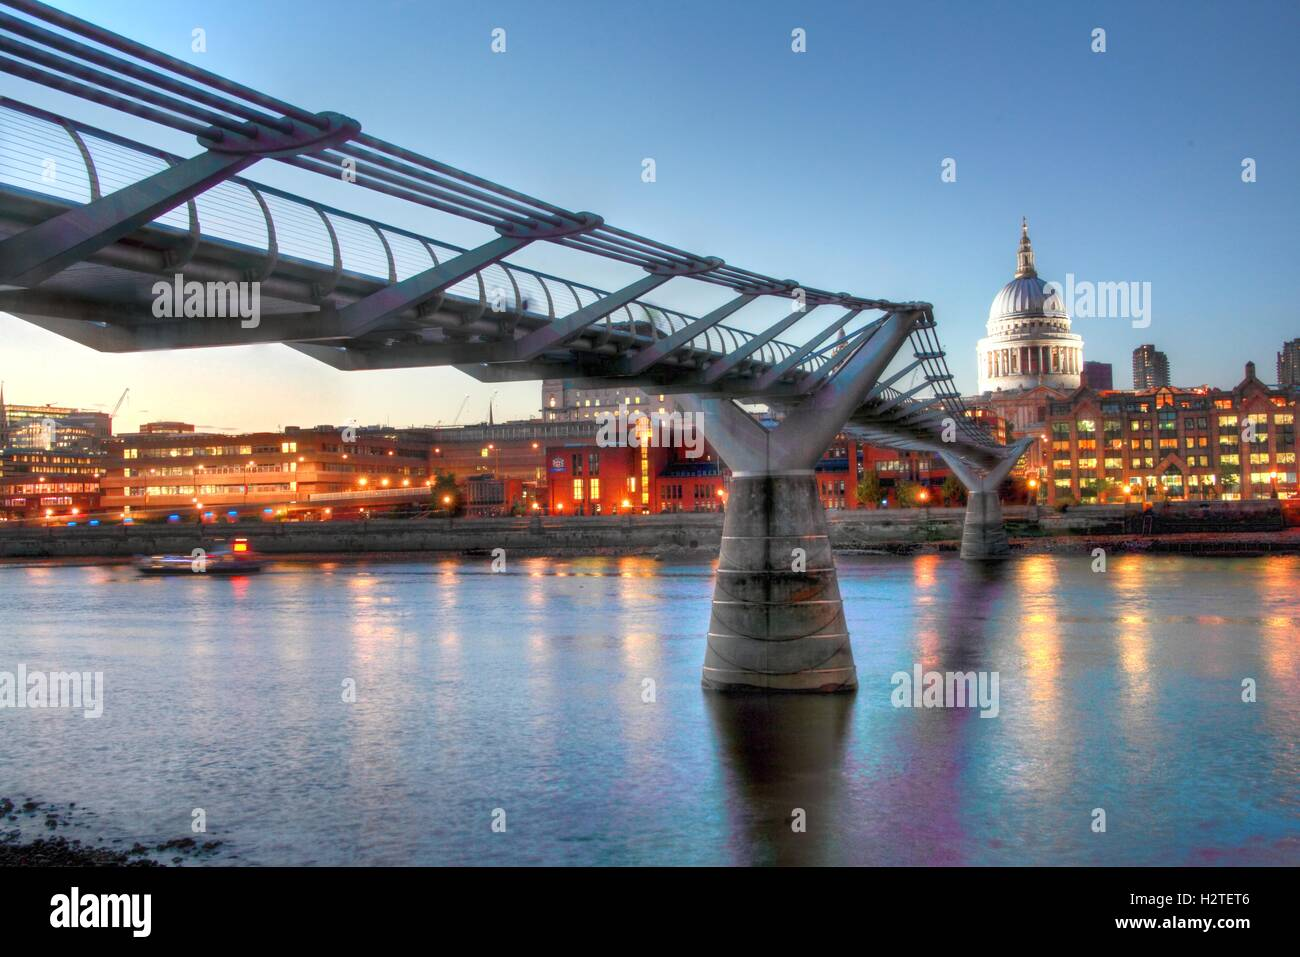 Capital,City,water,reflection,reflections,skyline,pano,blue,dusk,evening,morning,dawn,bridge,bridges,dock,dockside,riverside,side,wide,landscape,south,north,bank,travel,traveller,tourist,thamespanorama,architecture,boats,building,business,business,district,cityscape,lit,River Side,GoTonySmith,@HotpixUK,Tony,Smith,different,unique,Panorama,bridges,crossing,crossings,lights,icon,iconic,sky,line,skyline,walkway,visitor,suspension,Millennium,wobbly,St,Pauls,Cathedral,Buy Pictures of,Buy Images Of,Images of,Stock Images,Tony Smith,Photo of,River Thames,City Of London,River Thames Panorama,London City,Millennium Bridge,St Pauls